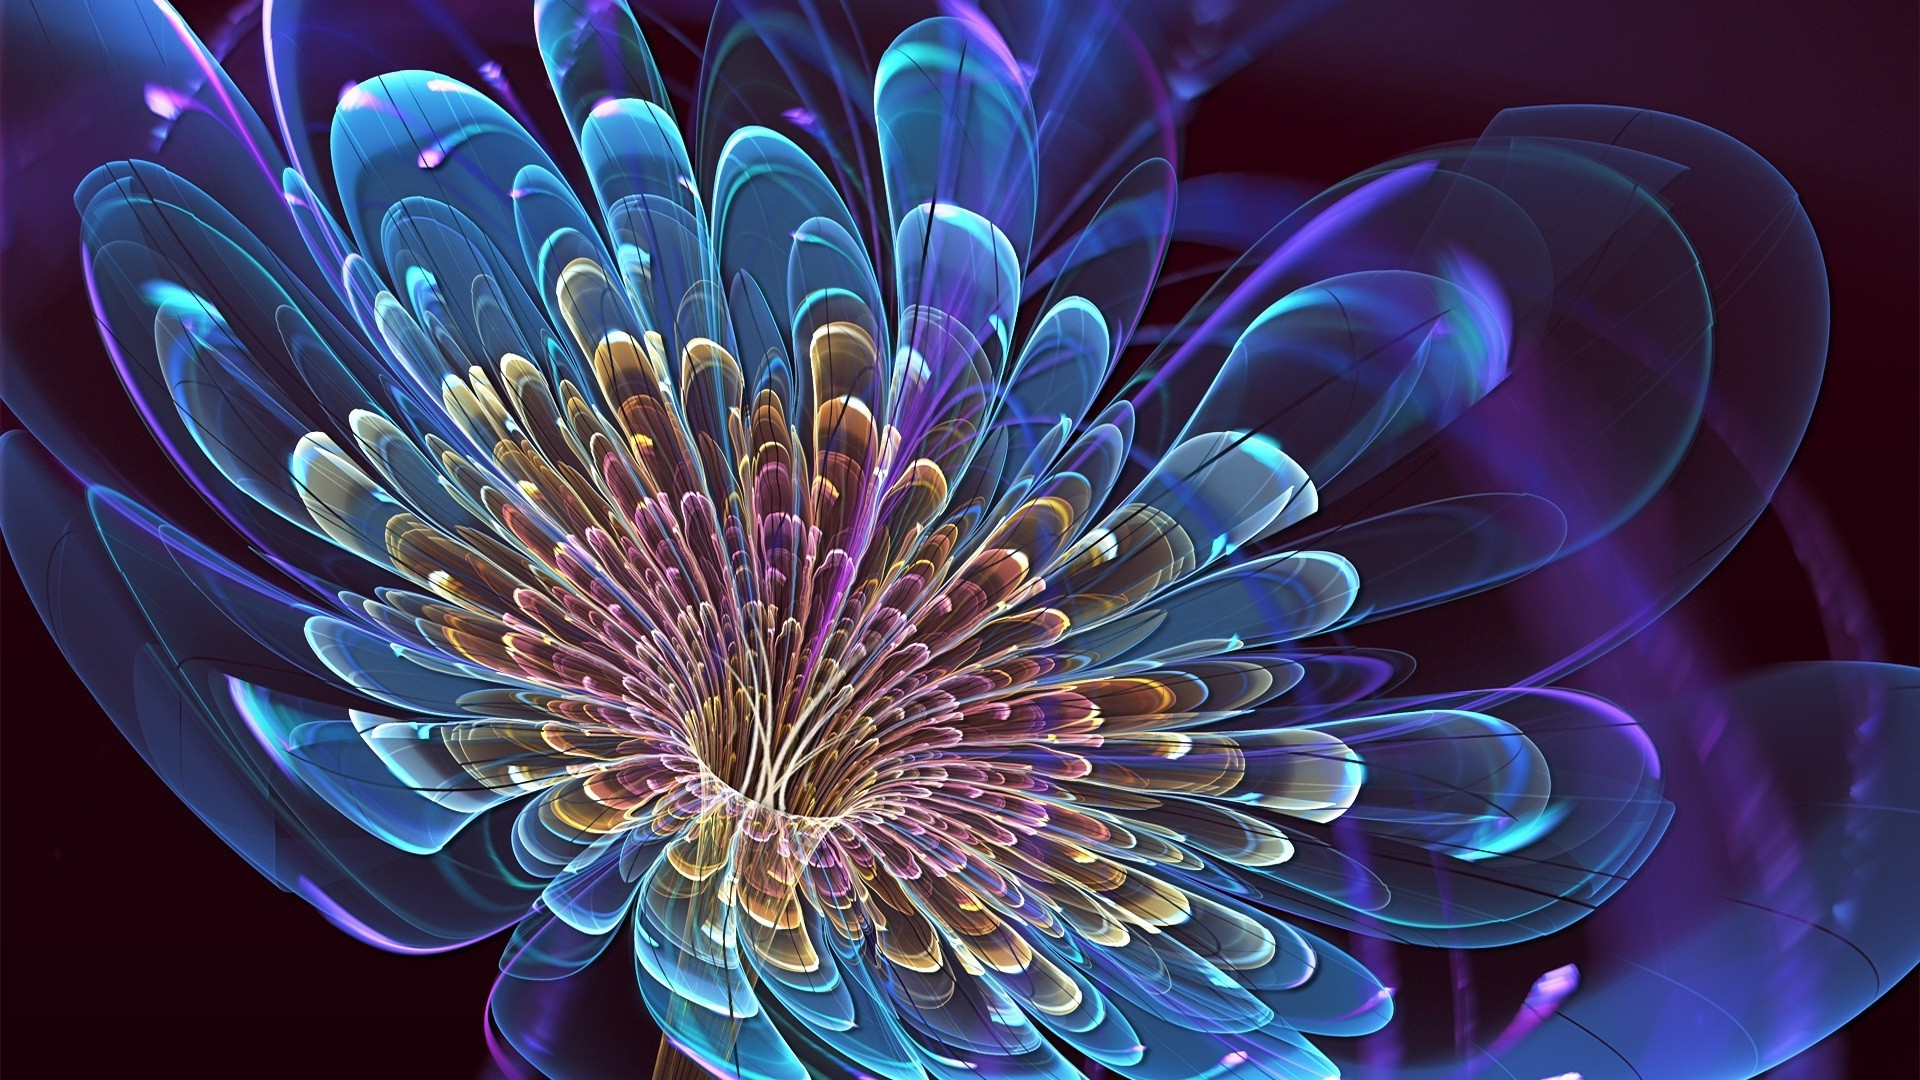 Neon Blue Flower With Golden Petals Phone Wallpapers